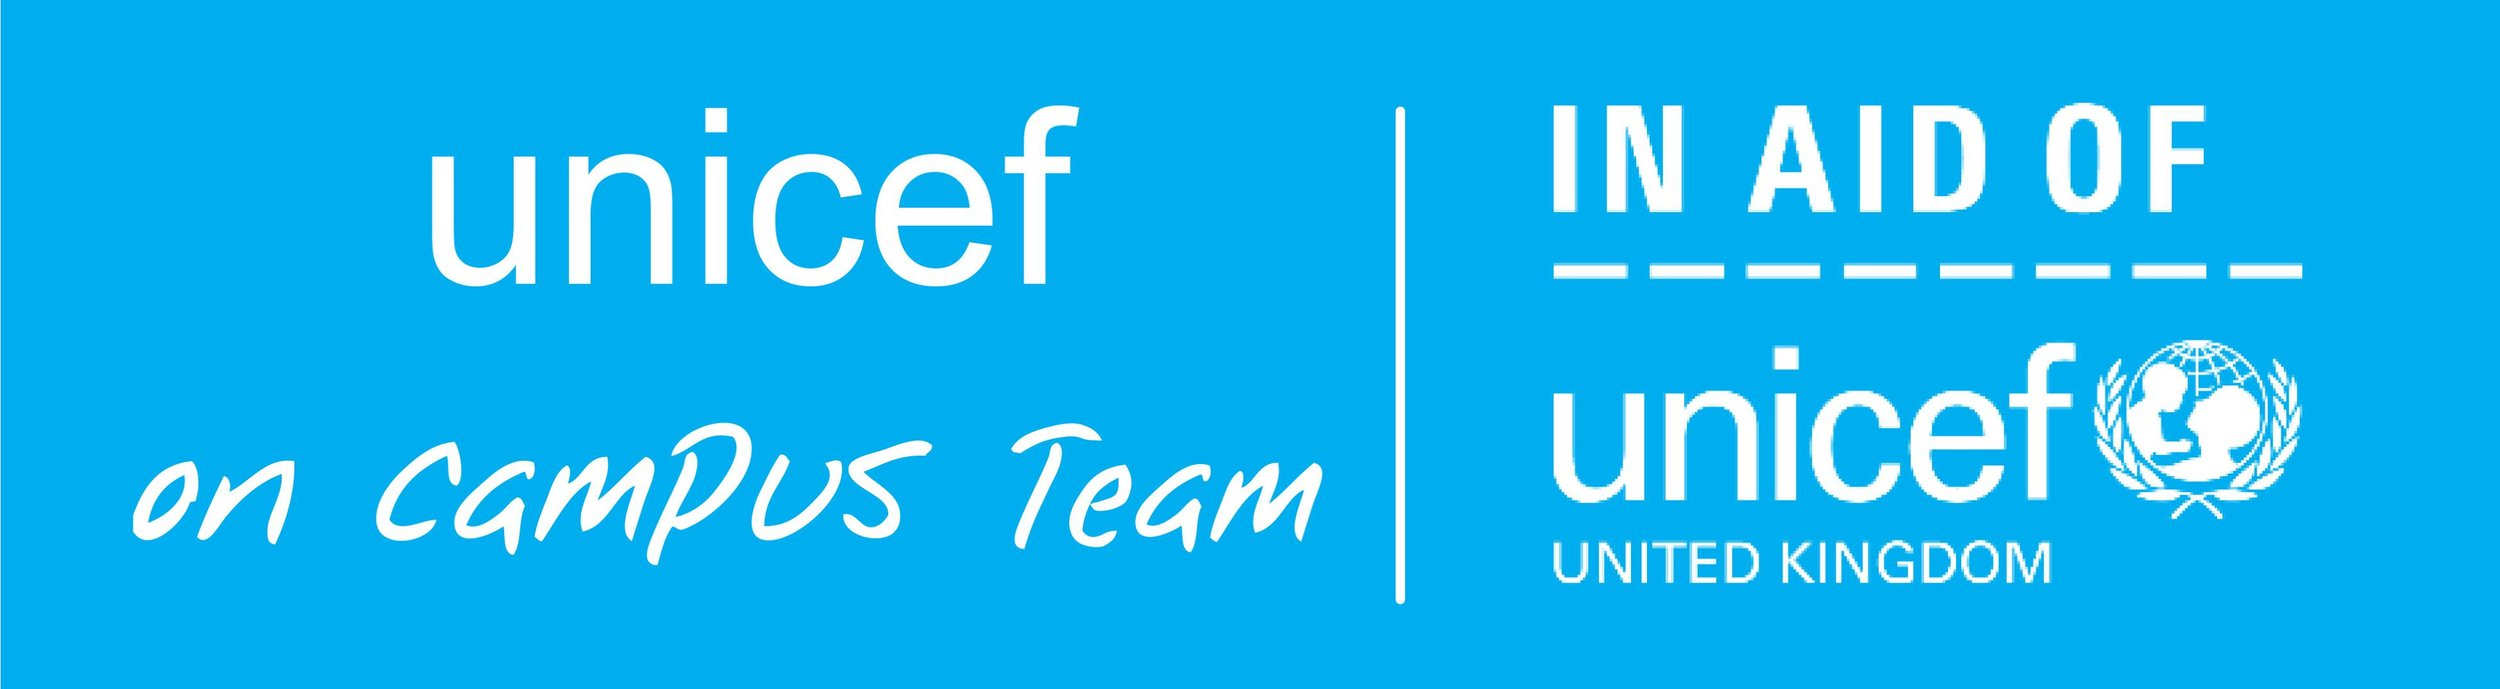 Volunteer with Unicef on campus at Edinburgh University